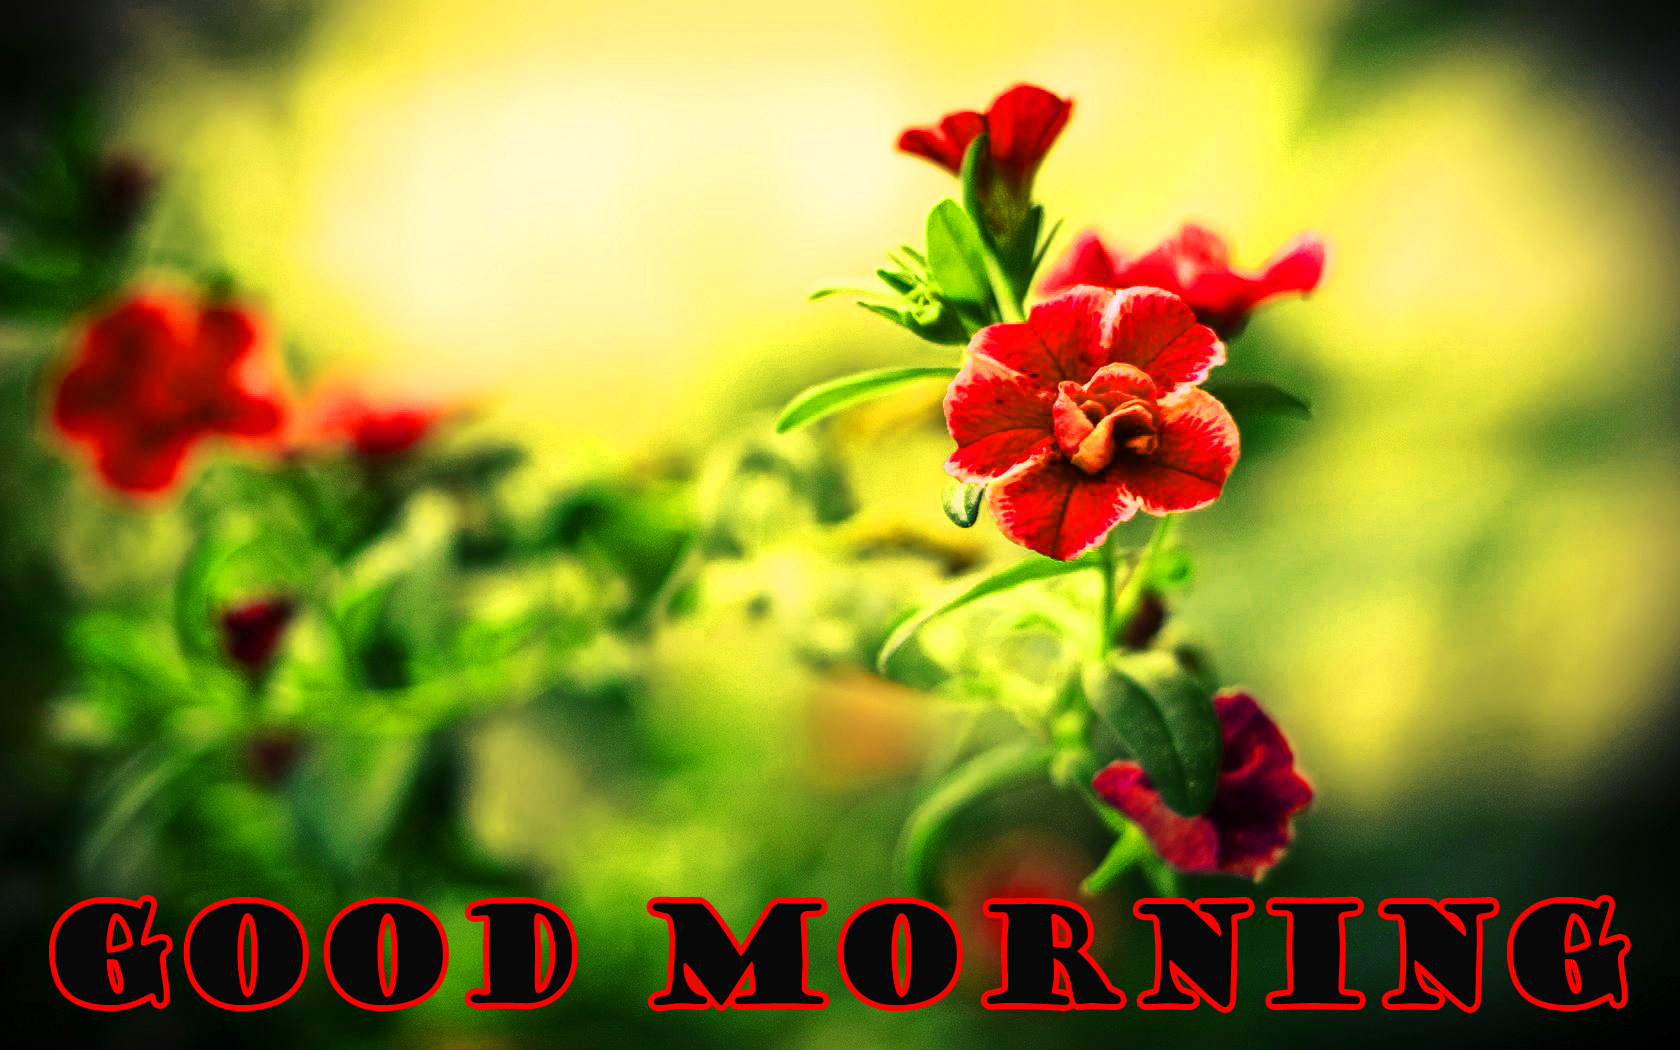 Special Wonderful Good Morning Photo Images Pictures Free Download